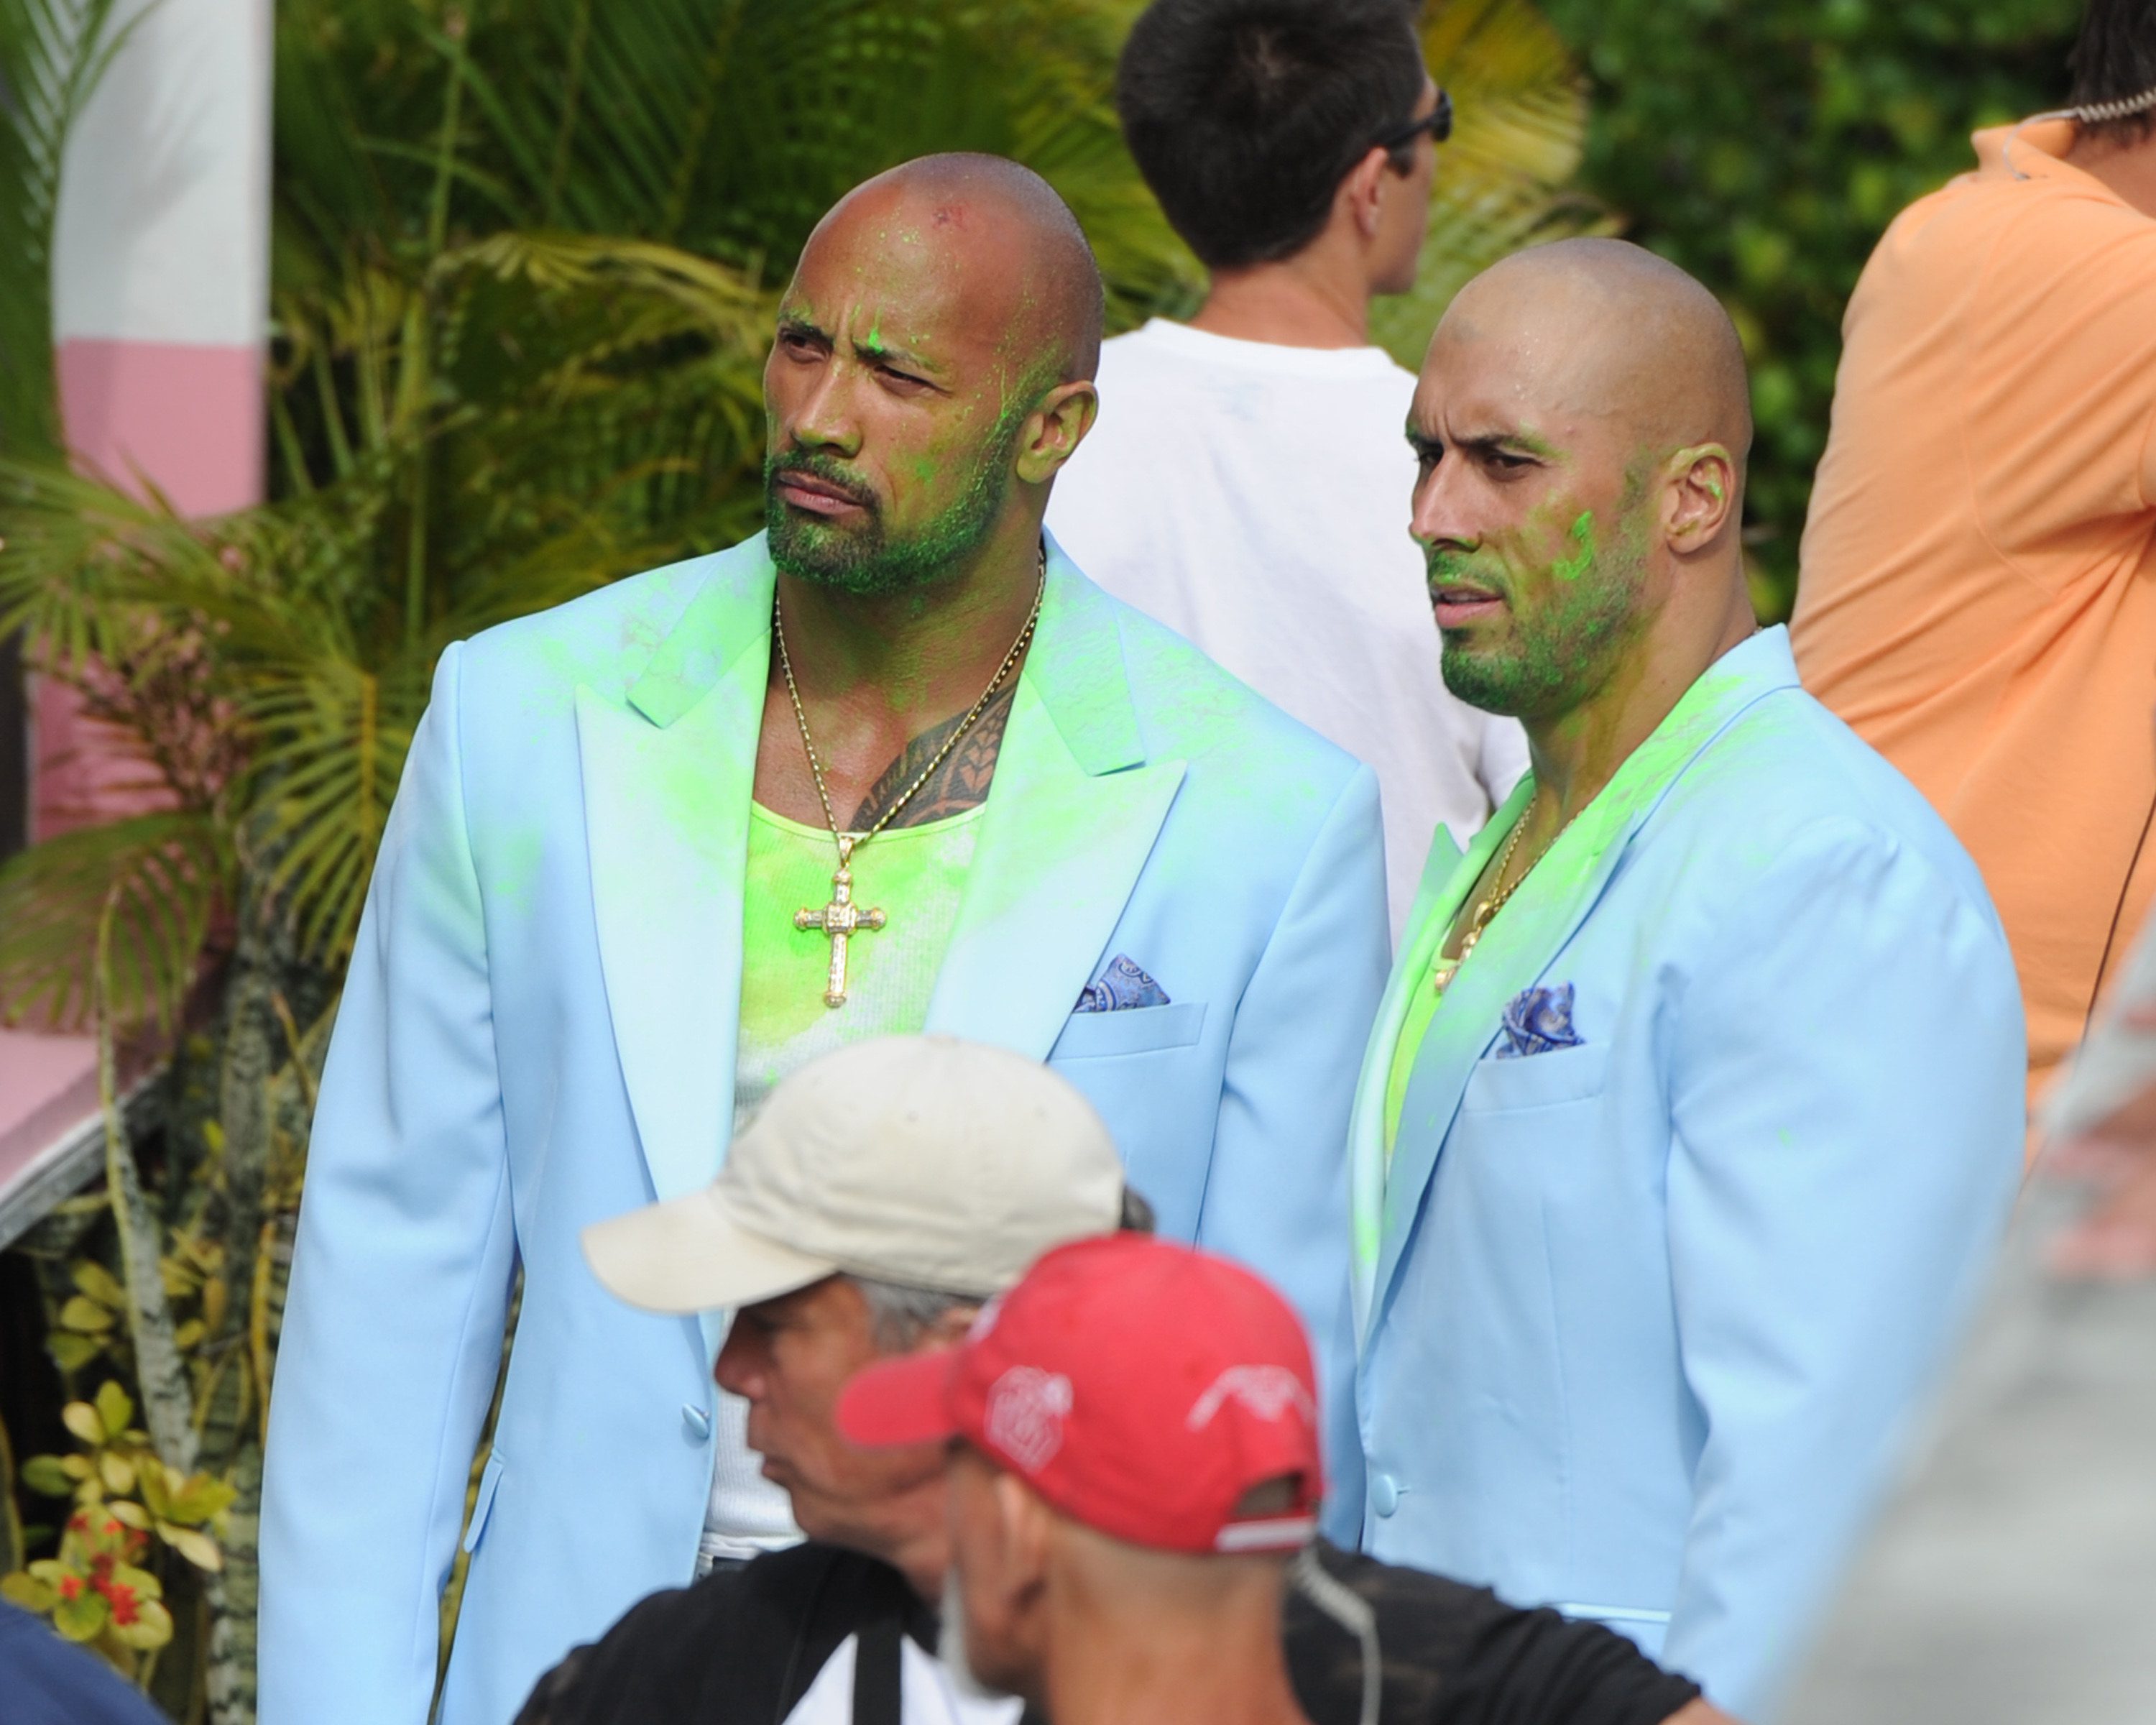 the rock and his stunt double wearing light blue blazers while filming